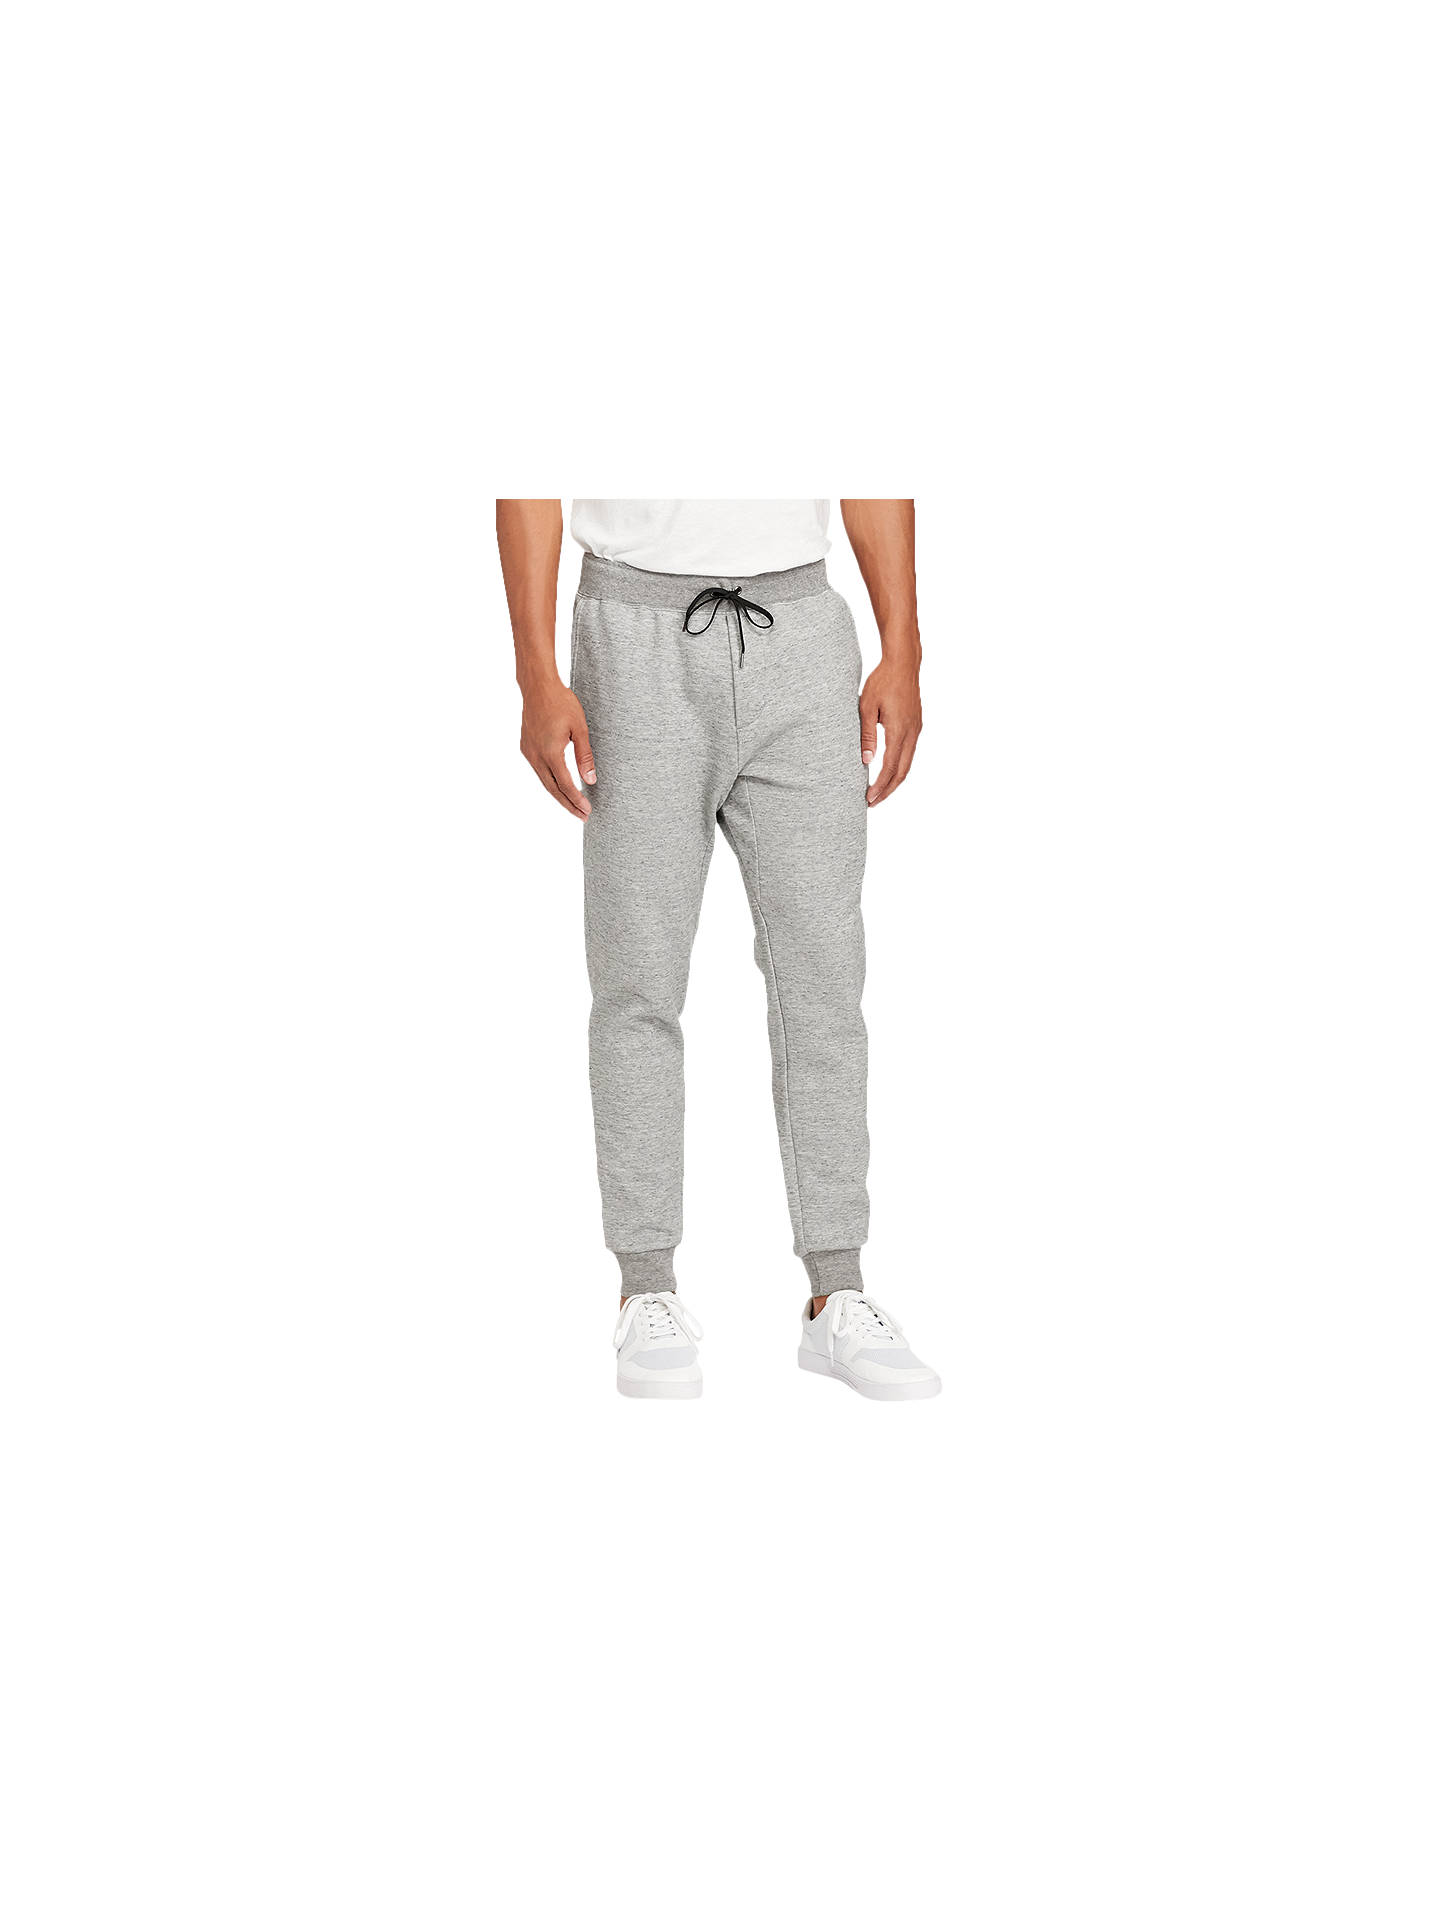 01c3339f6 ... Buy Polo Ralph Lauren Double-Knit Jogging Bottoms